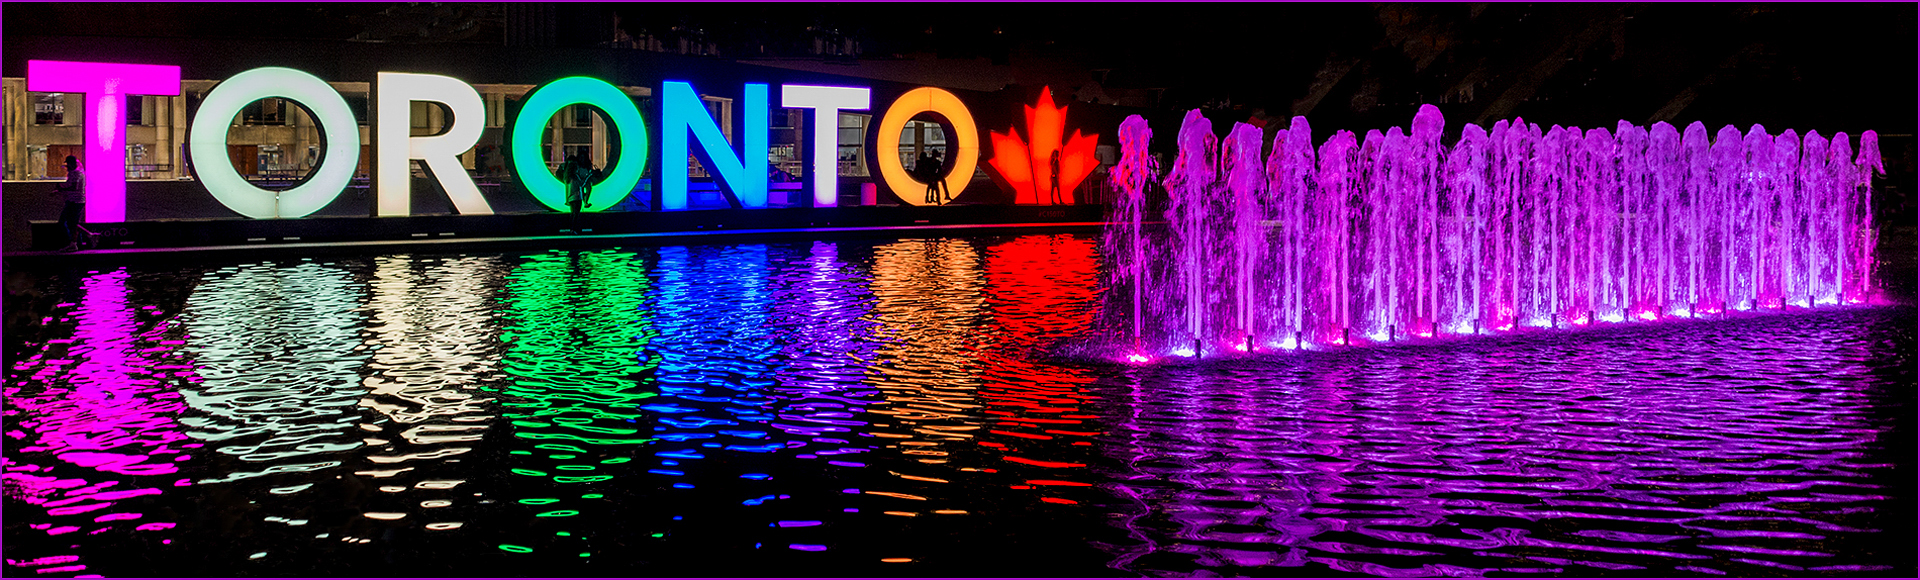 Toronto City Hall pond and sign